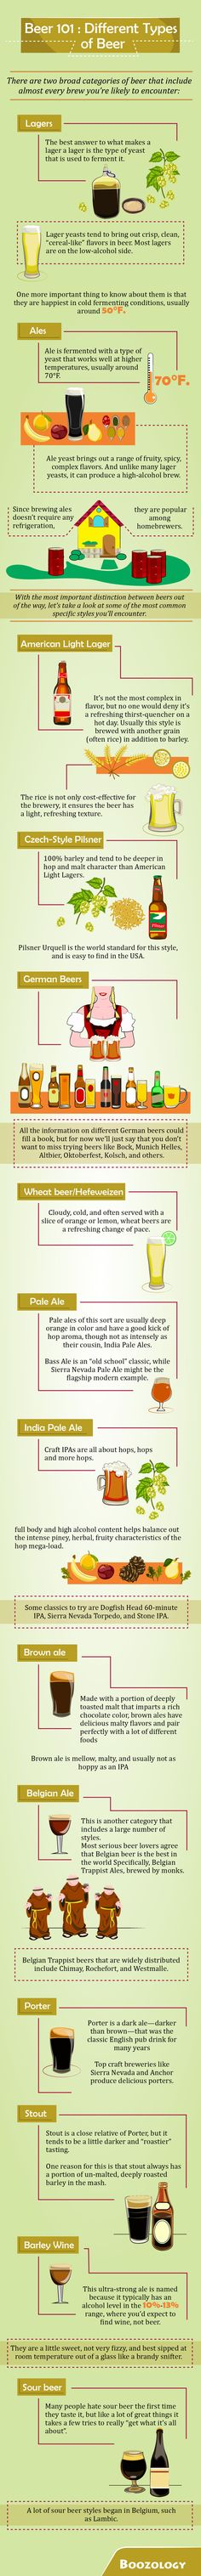 Different Types of Beer #Boozology